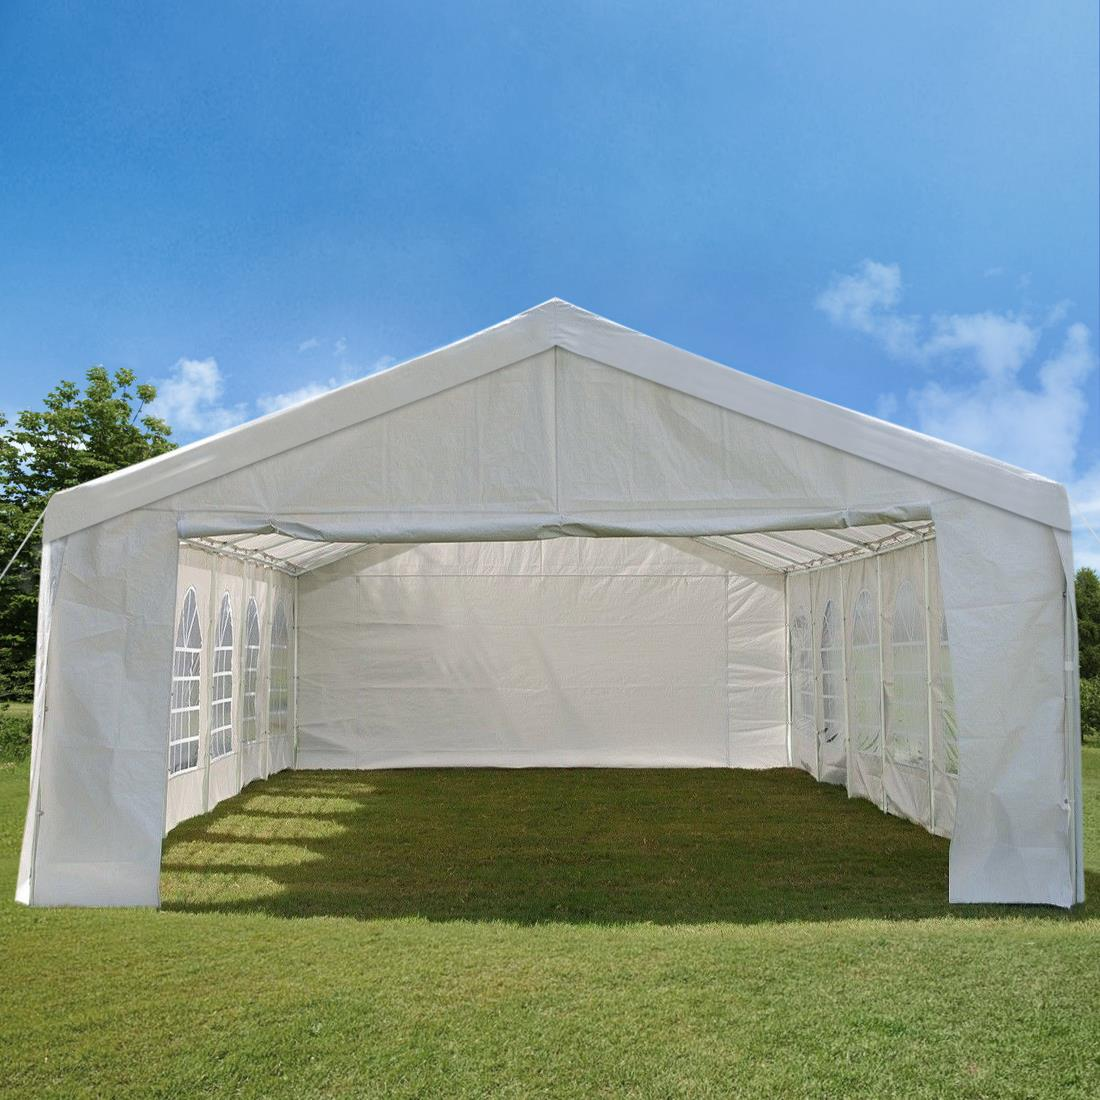 Peaktop-Heavy-Duty-Party-Tent-Event-Canopy-Gazebo-Wedding-Tent-With-Carry-Bag thumbnail 7